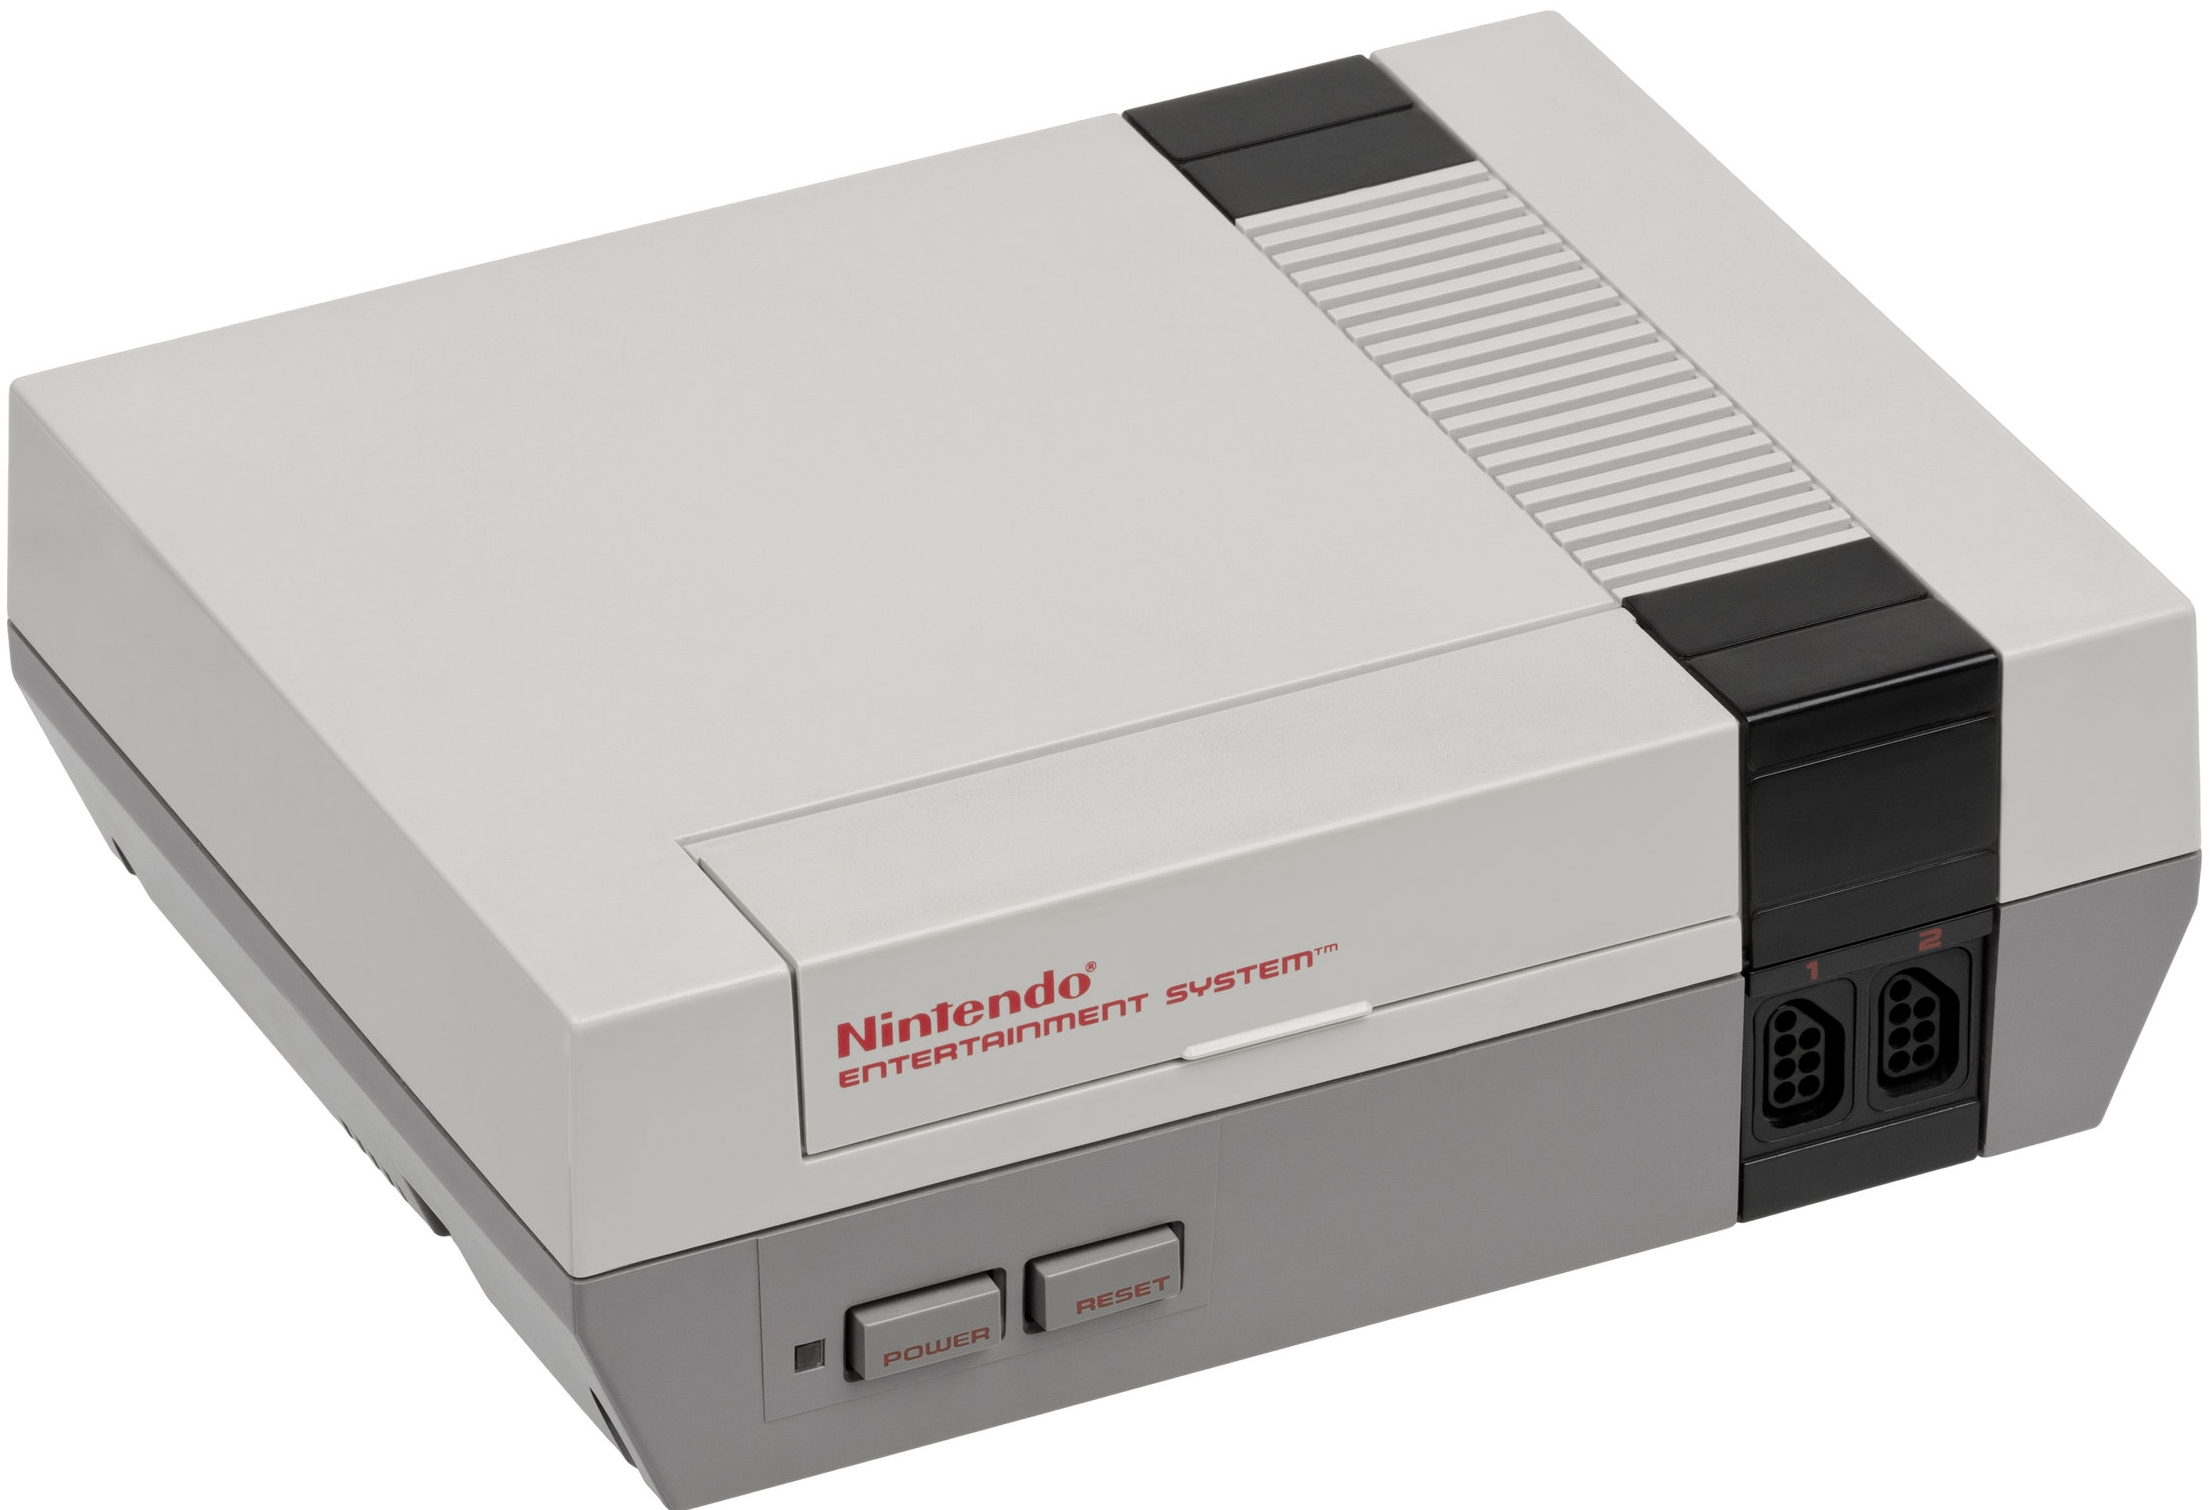 And original NES. most of you are probably too young to remember these.